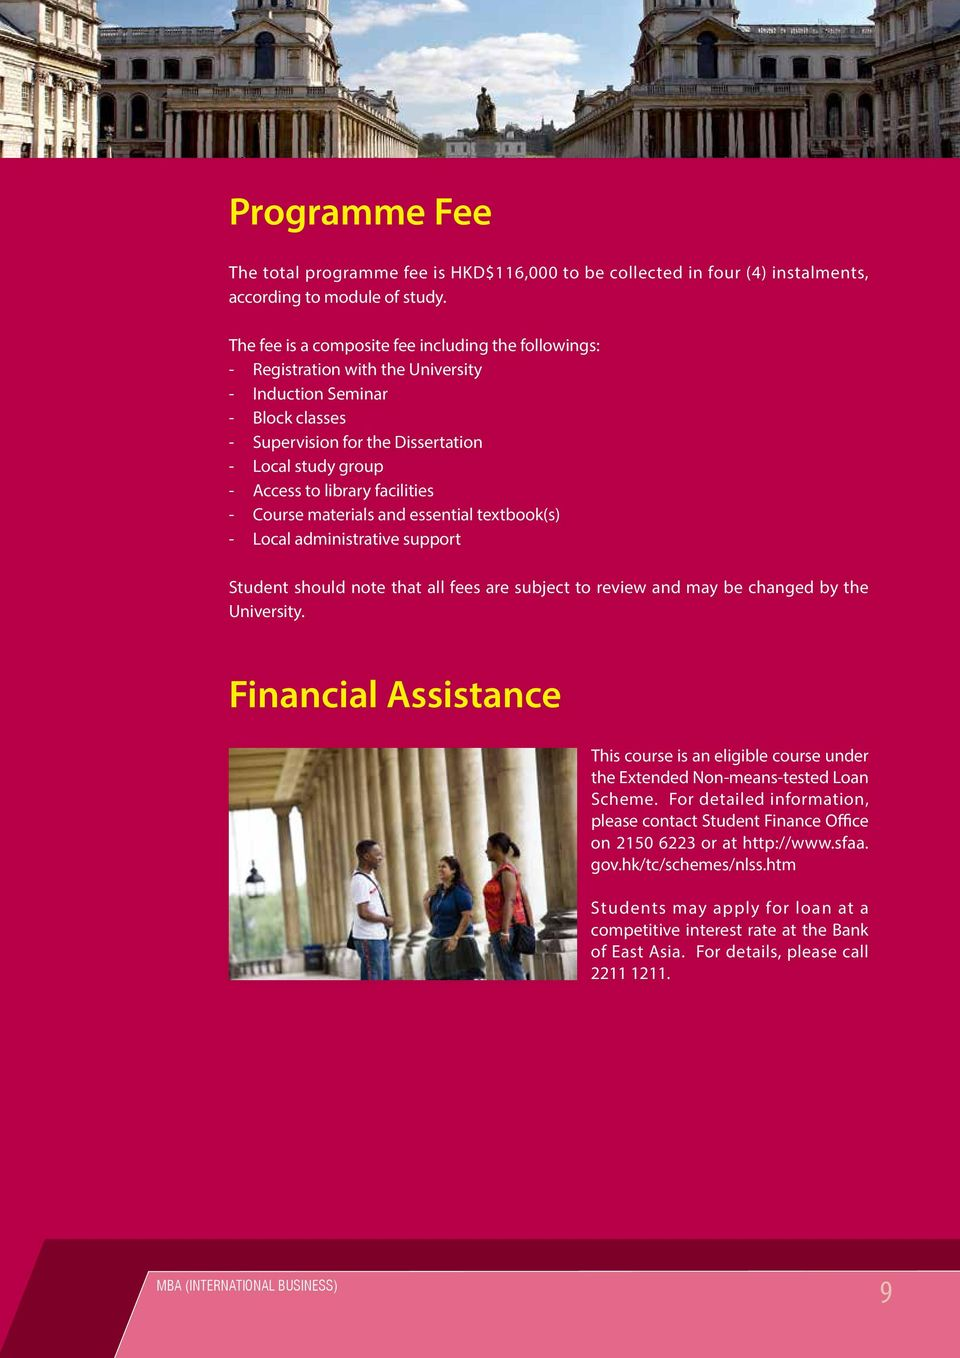 facilities - Course materials and essential textbook(s) - Local administrative support Student should note that all fees are subject to review and may be changed by the University.